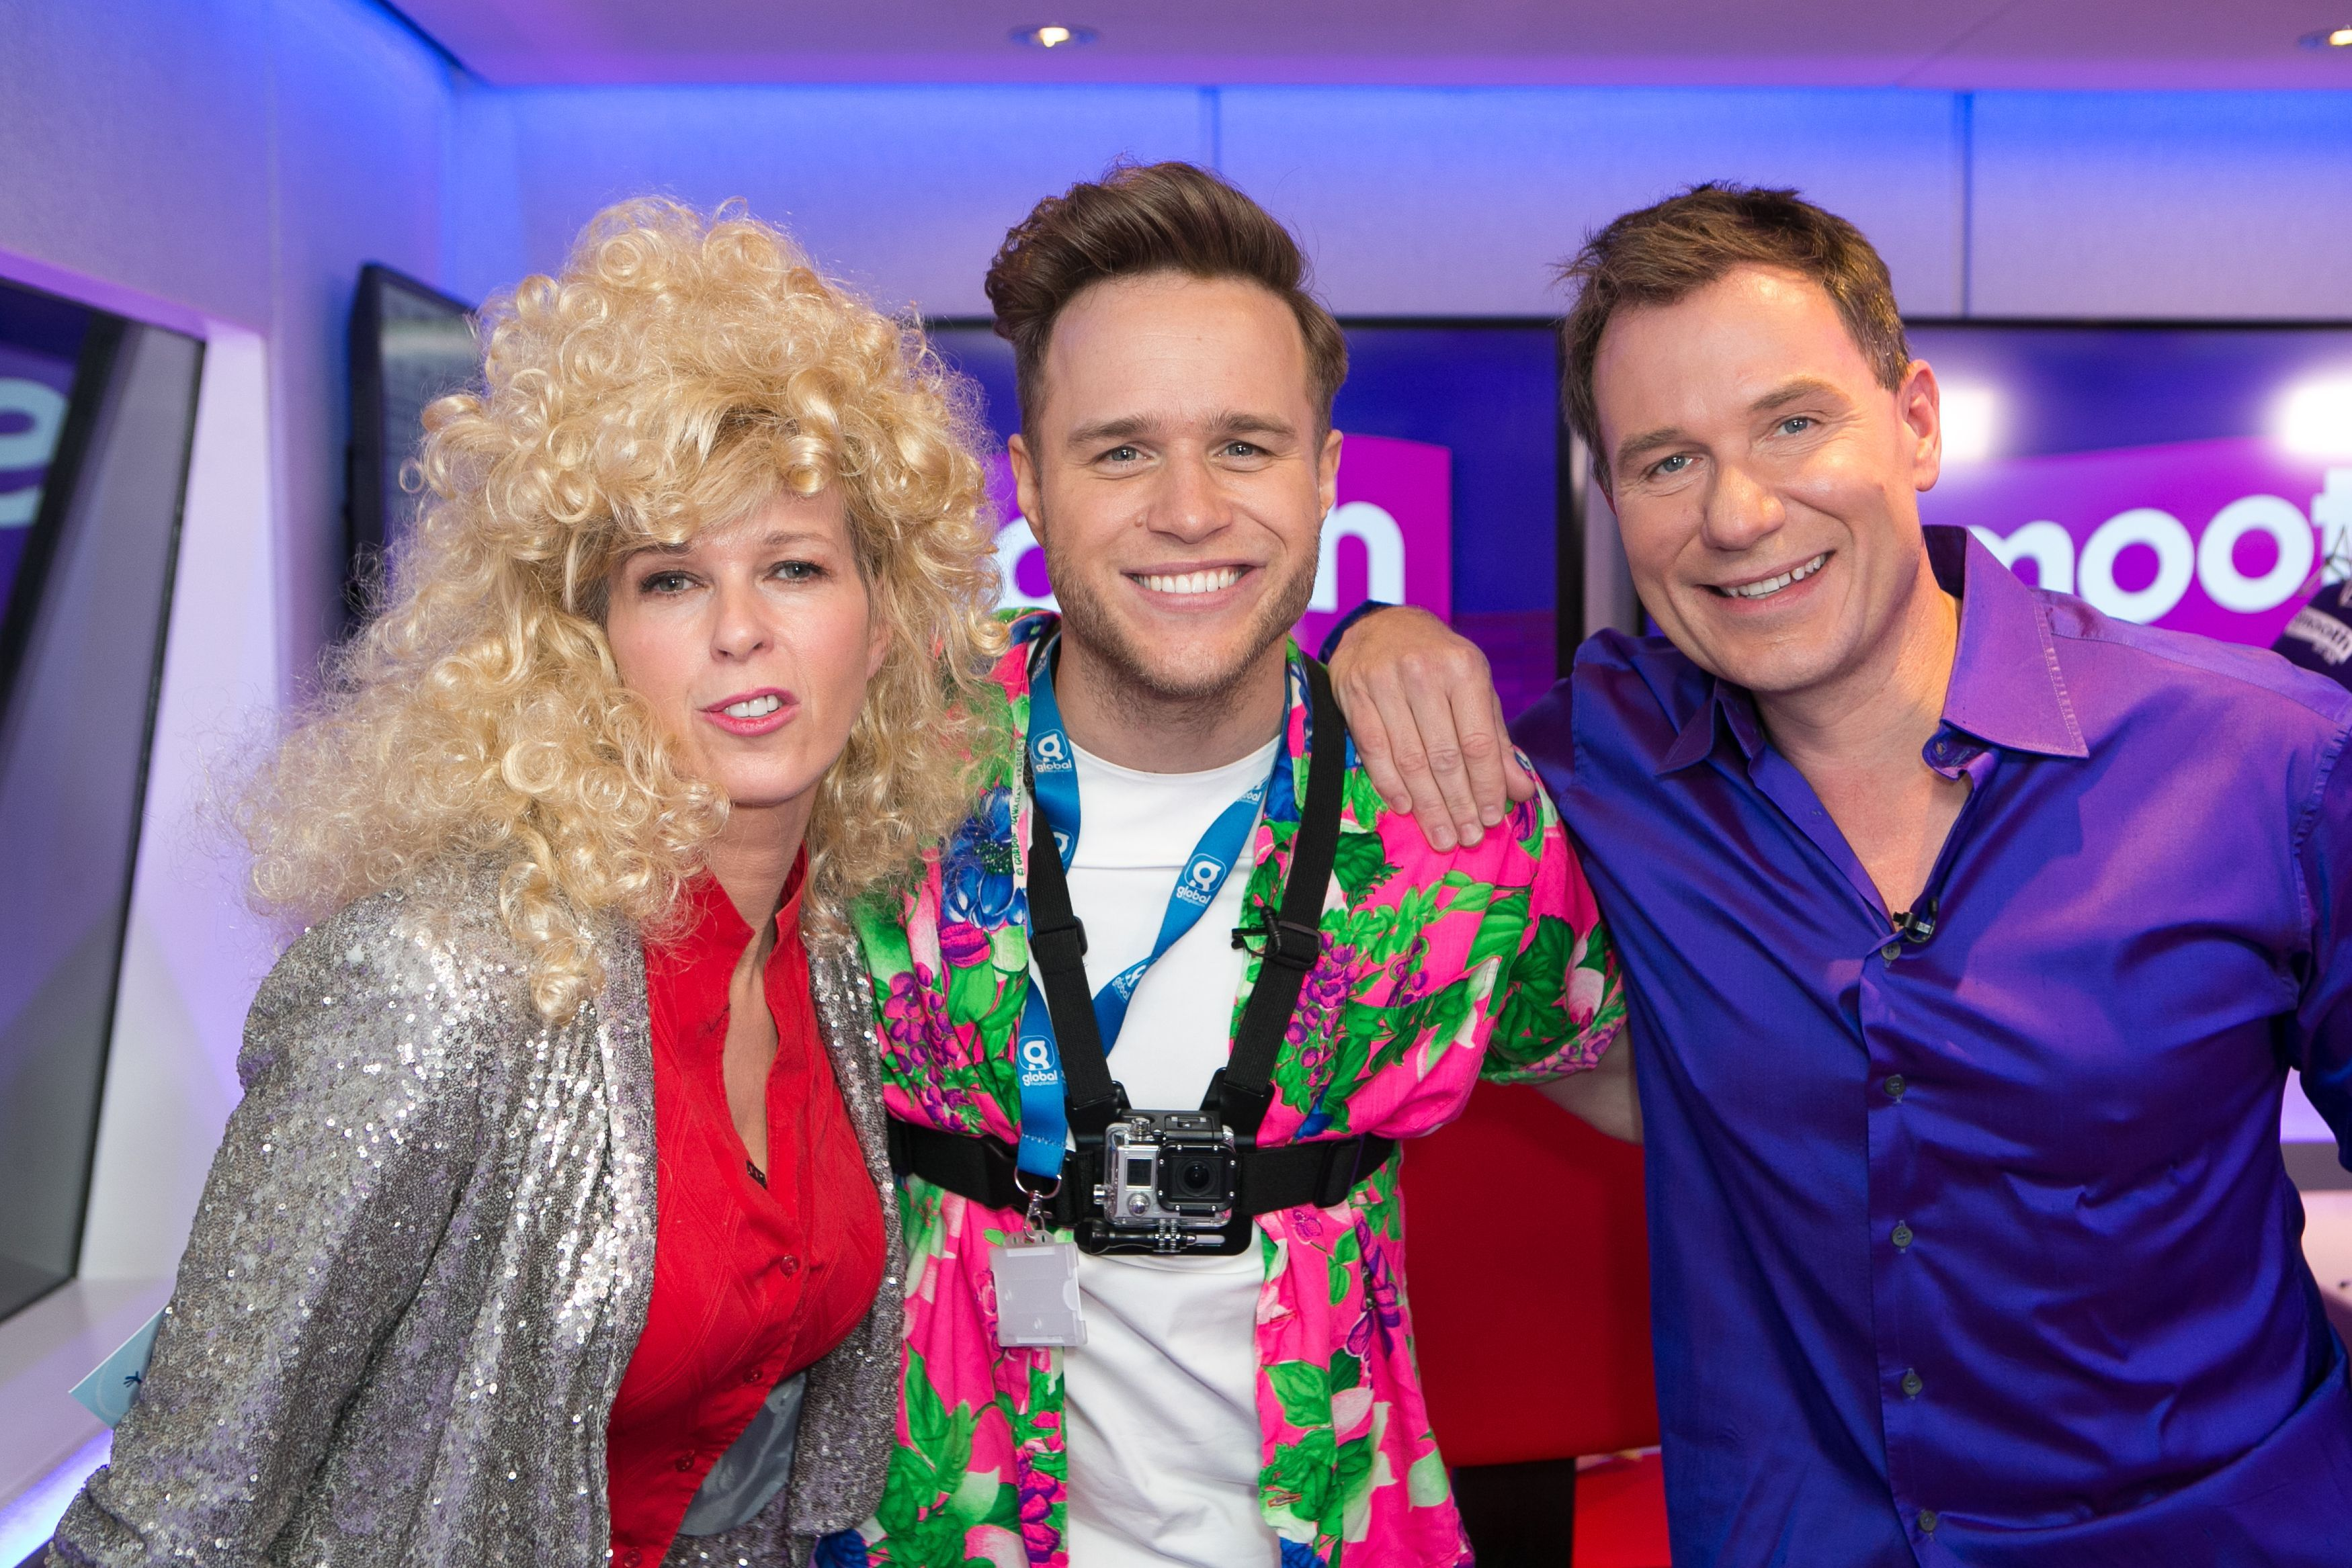 (Left-right) Kate Garraway, Olly Murs and Richard Arnold attending Global's Make Some Noise Charity Day at Global Radio station in Leicester Square, London.